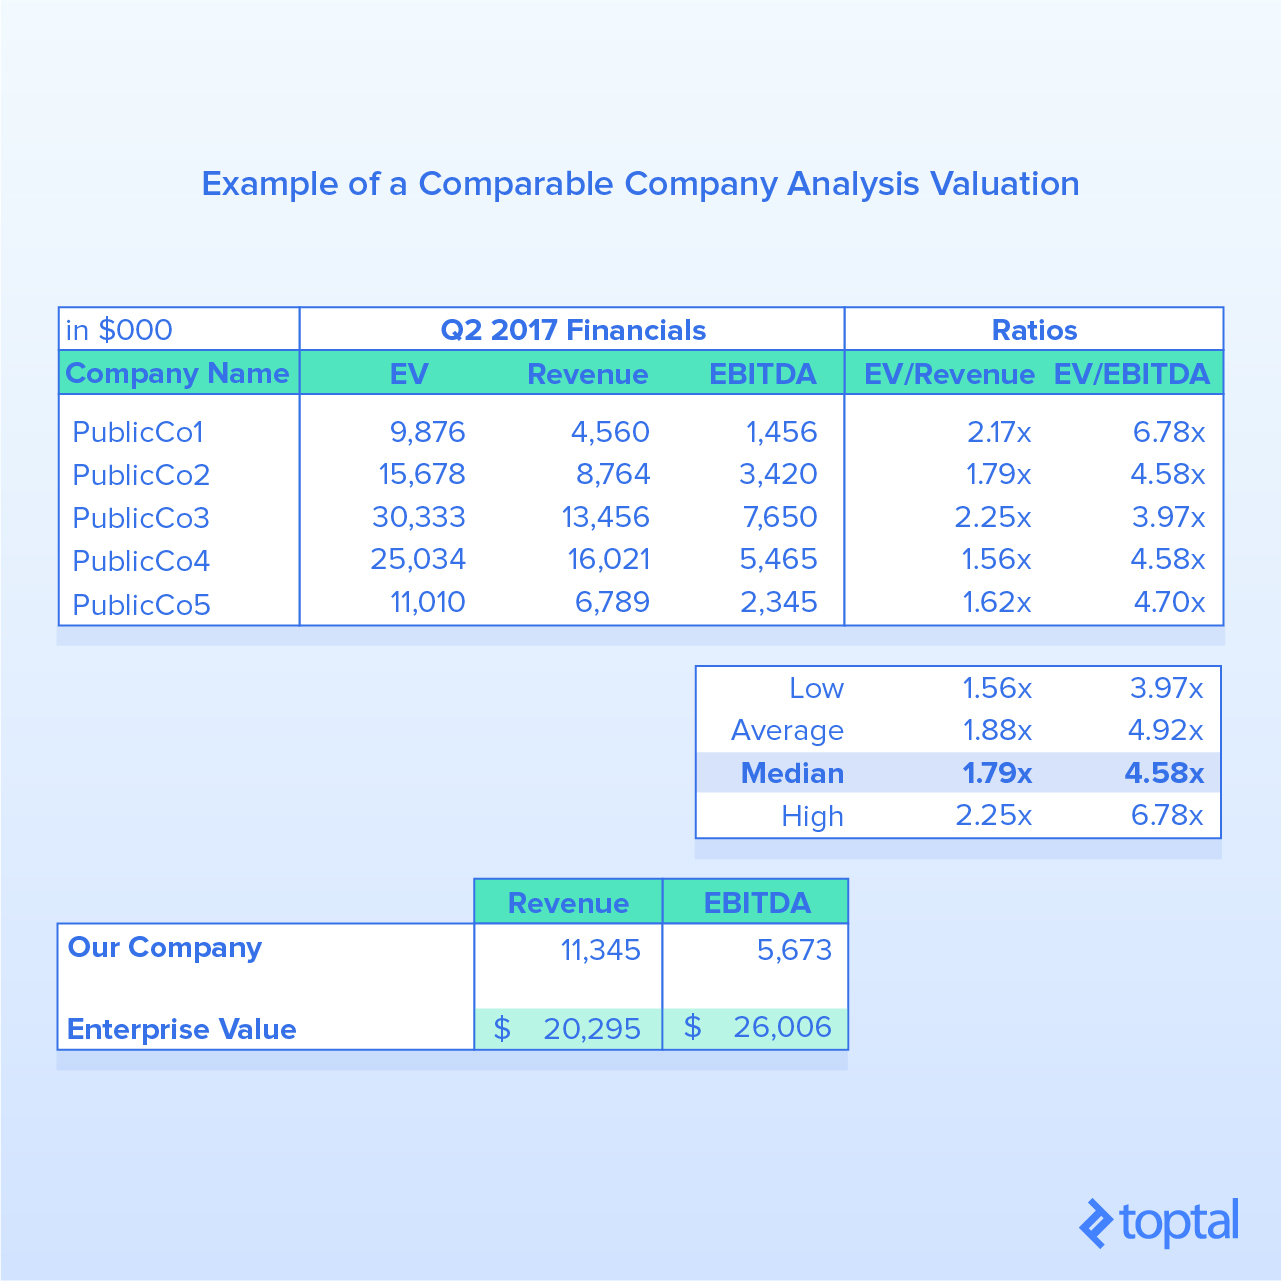 Figure 2: Example of a Comparable Company Analysis Valuation